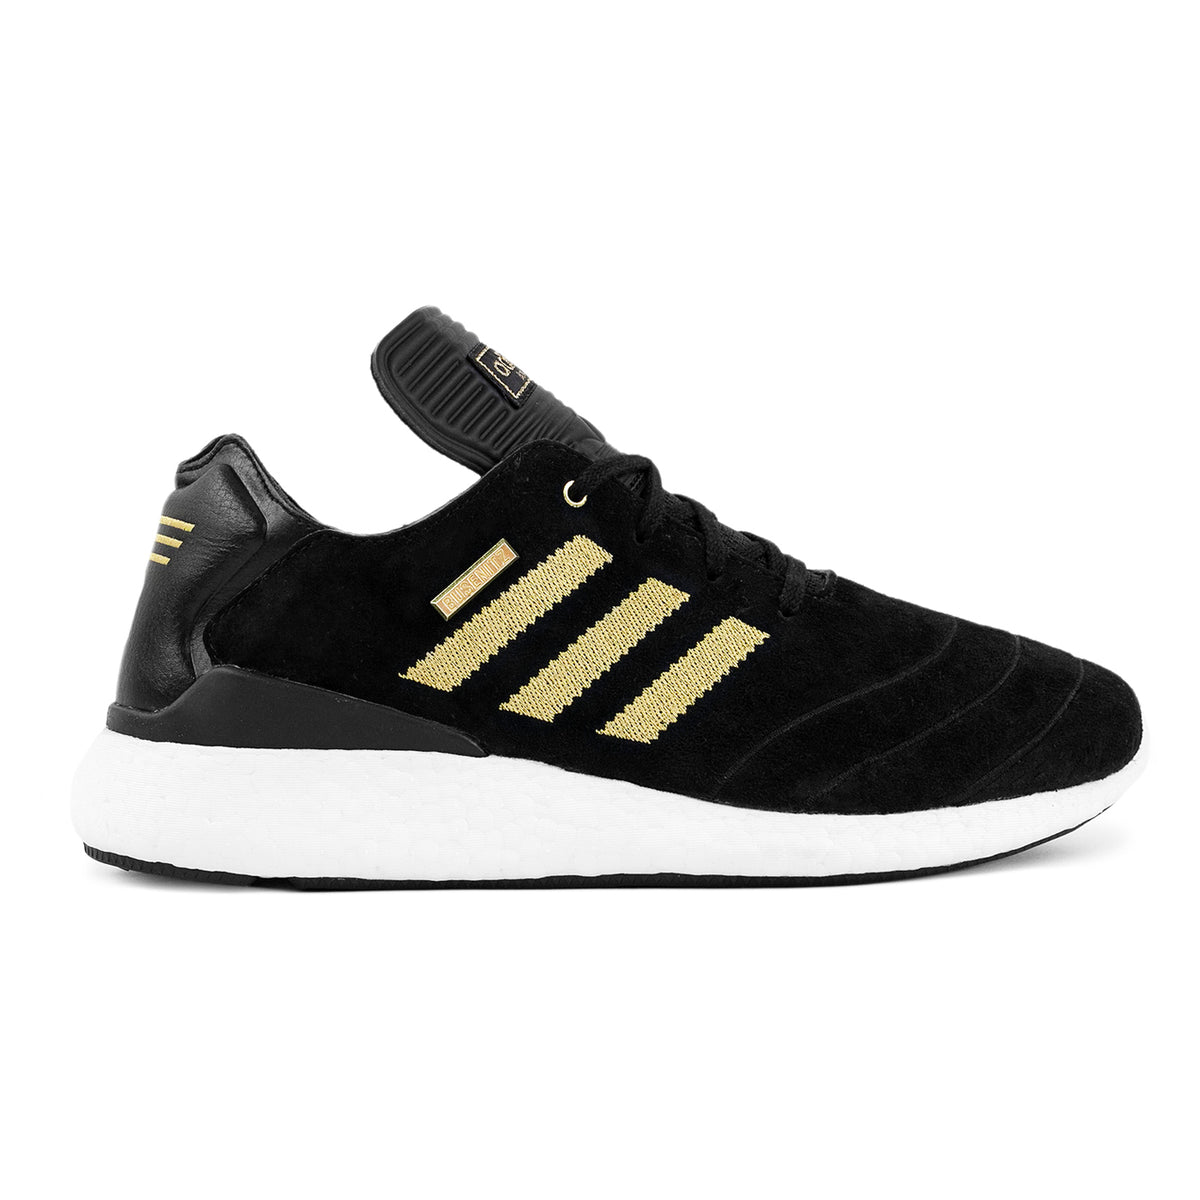 cheap for discount 499d6 24b33 Busenitz Pure Boost 10 Year Anniversary Shoe in Core Black   Gold Metallic    White by Adidas   Bored of Southsea